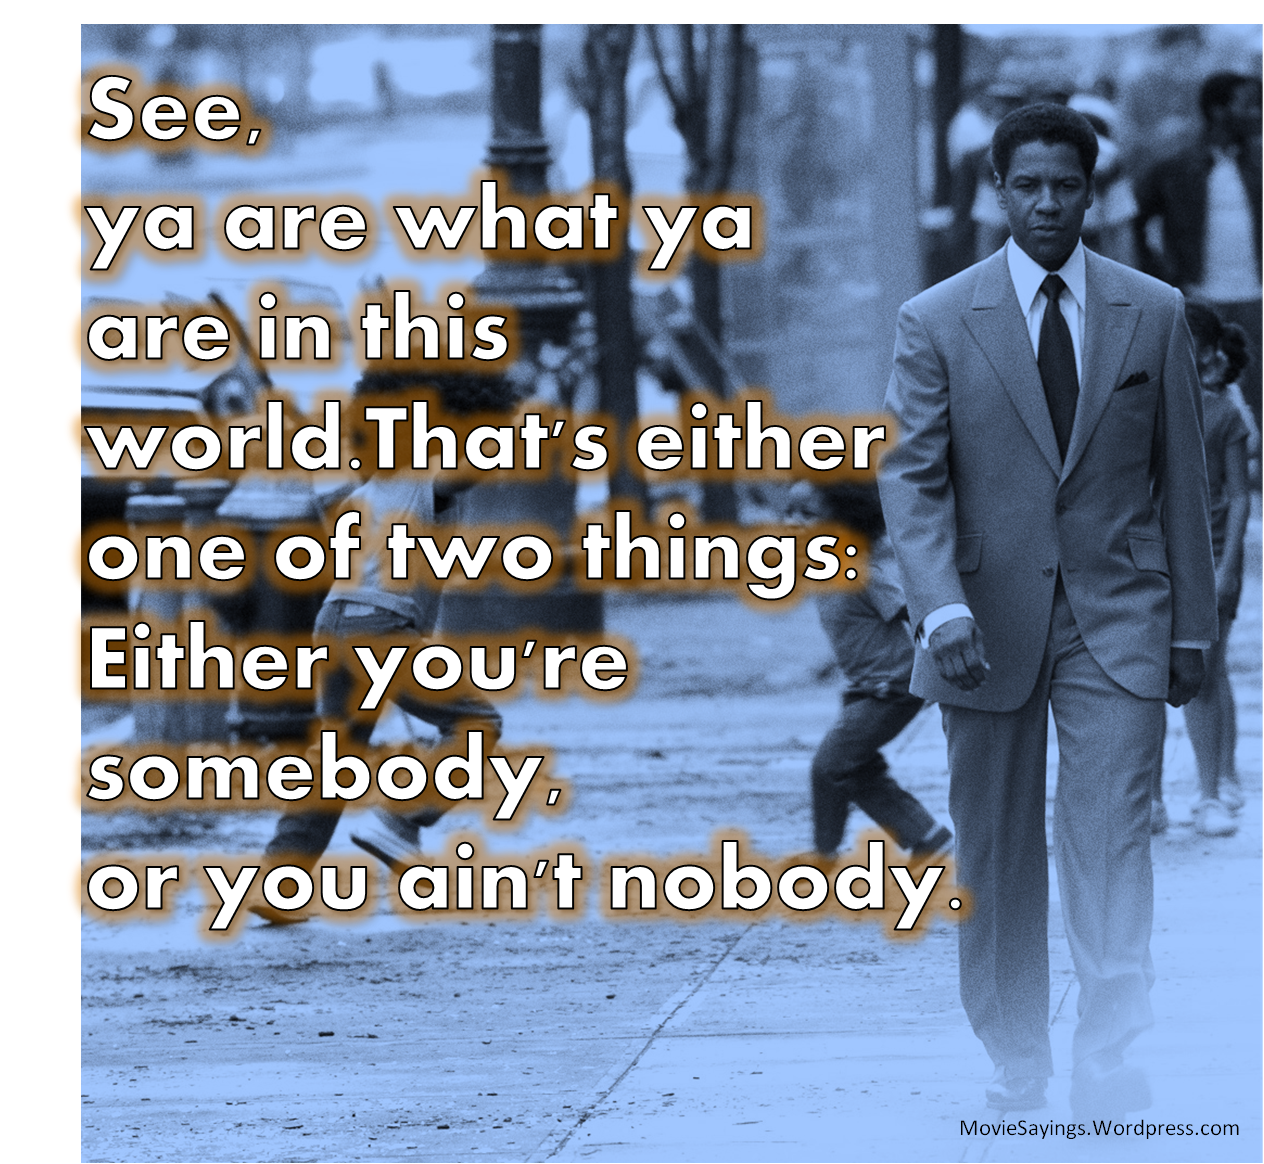 Gangster Quotes And Images: Denzel Washington American Gangster